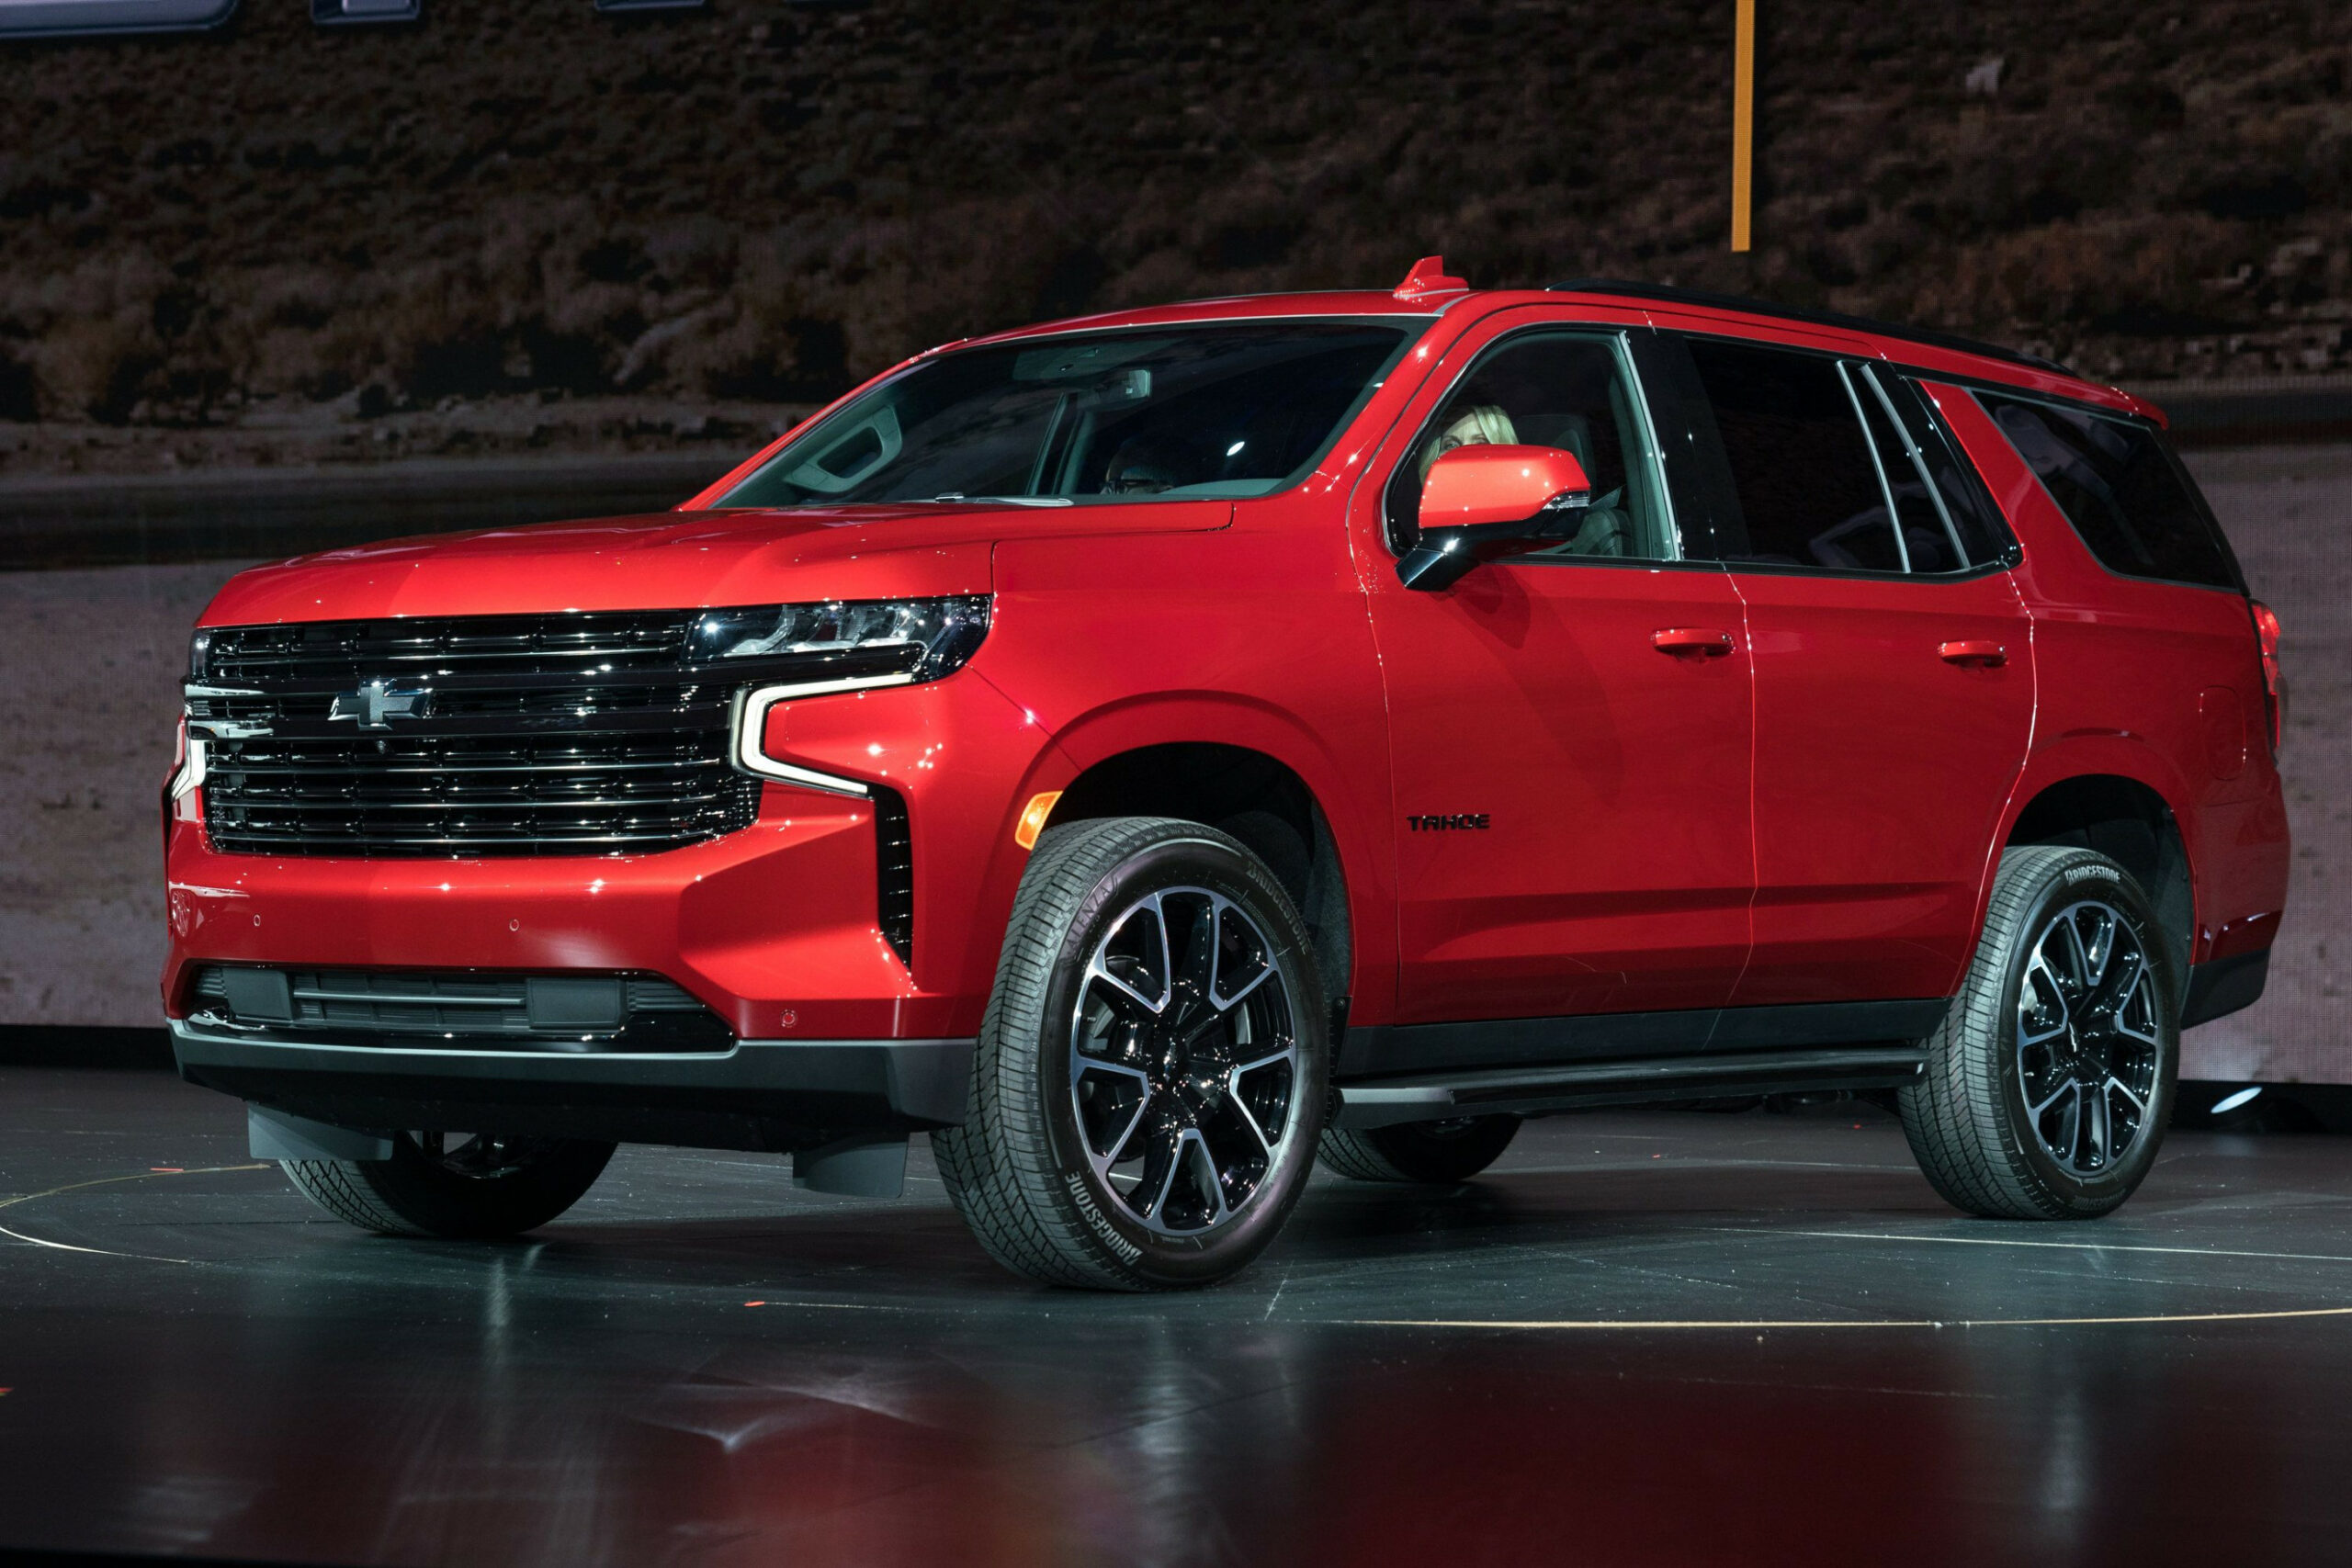 Performance When Will The 2022 Chevrolet Suburban Be Released